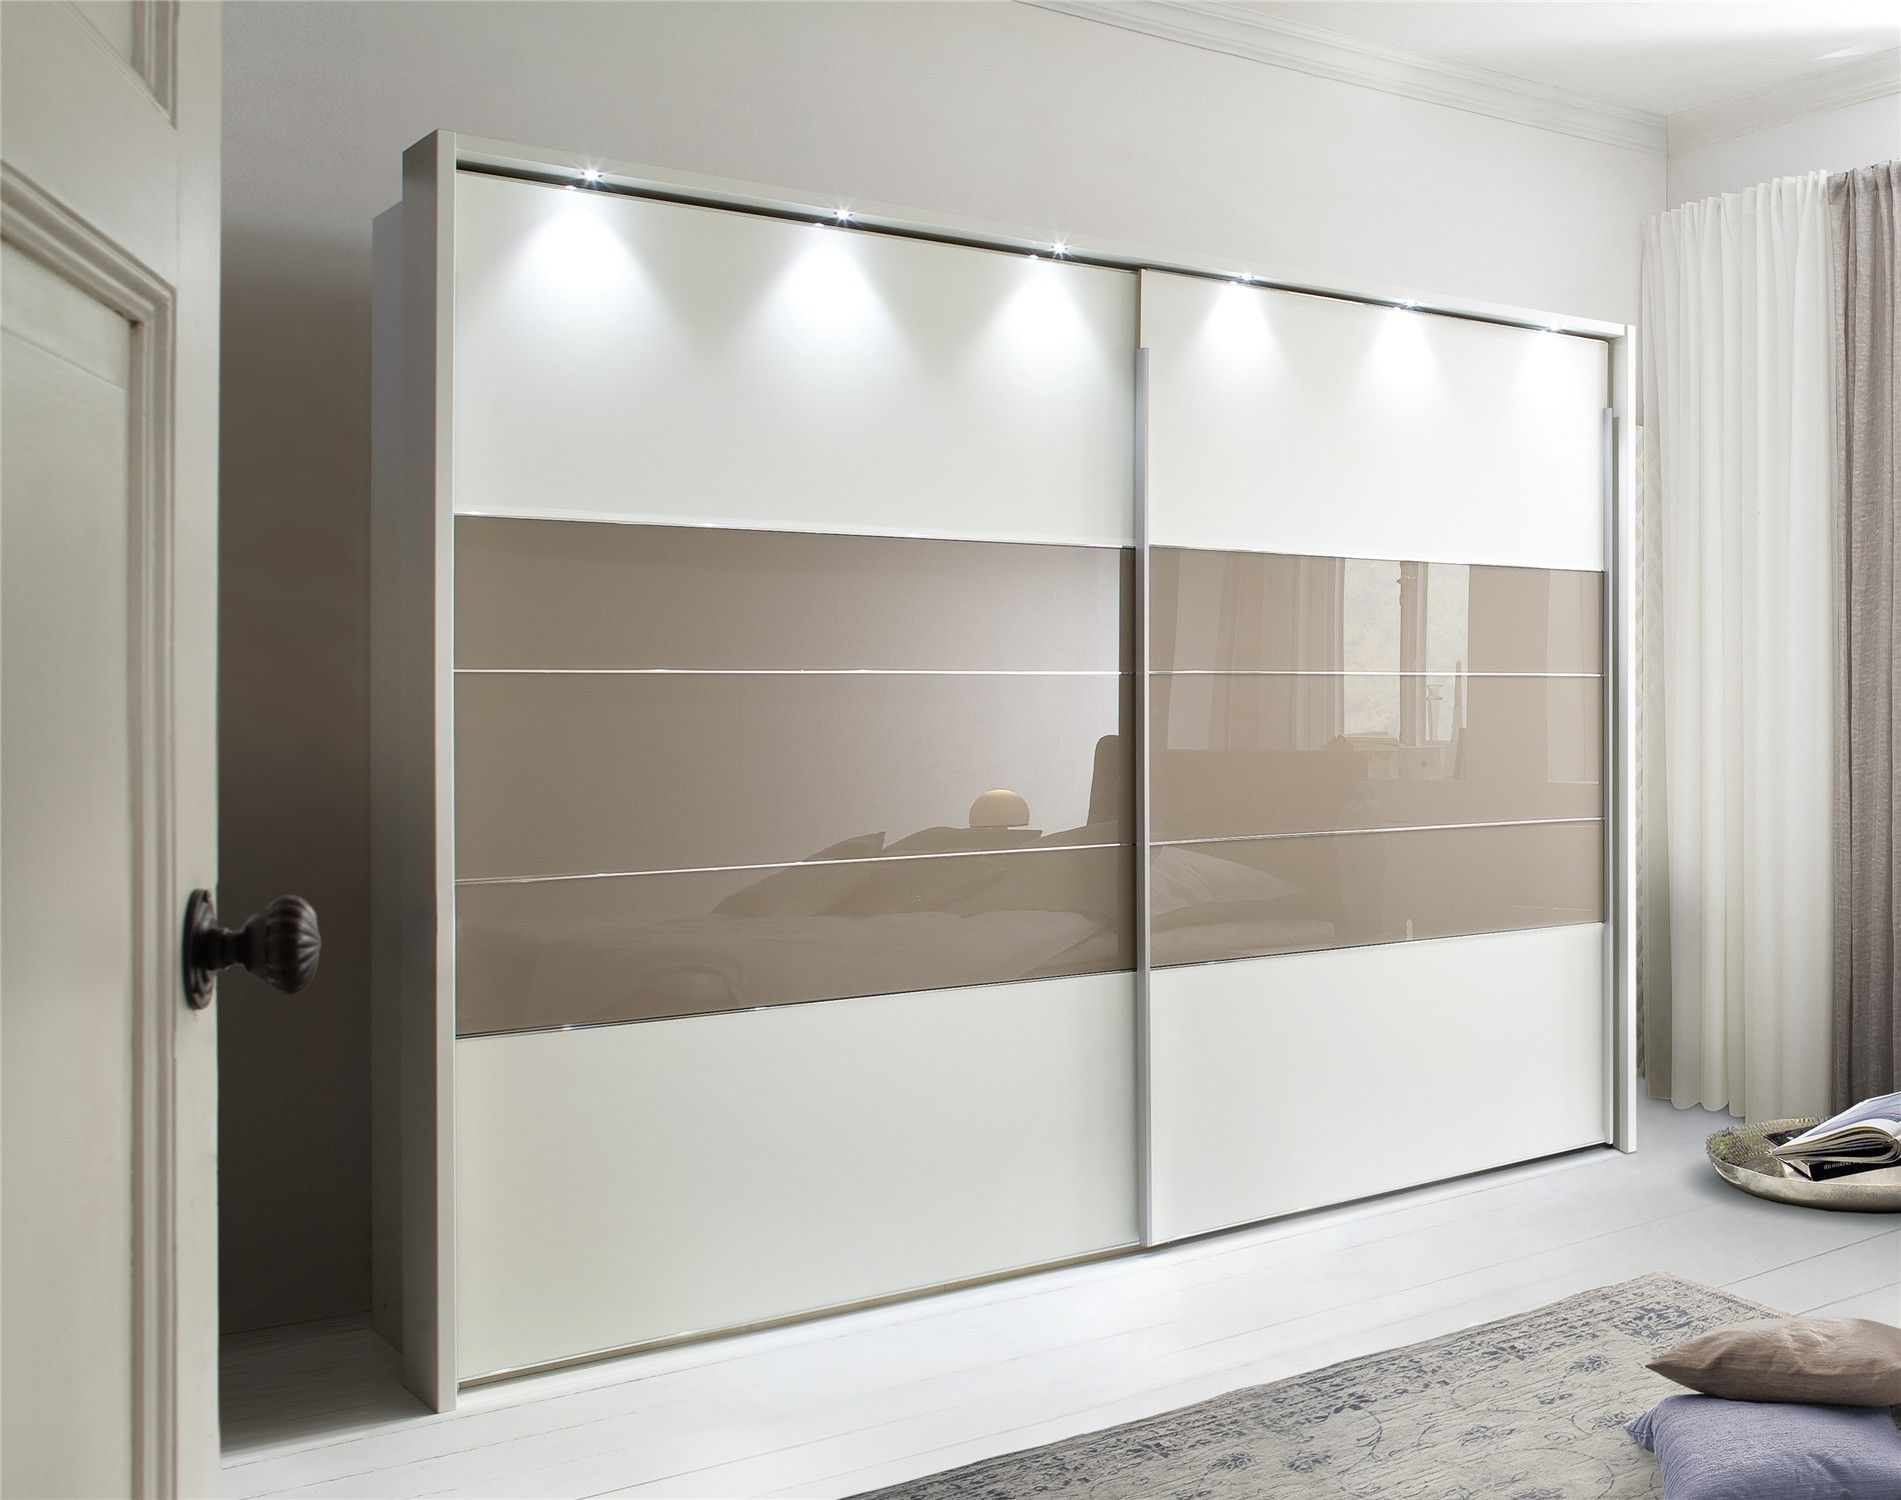 Le Meilleur Pin By Zh Kitchen On Sliding Door Wardrobe Armario Ce Mois Ci